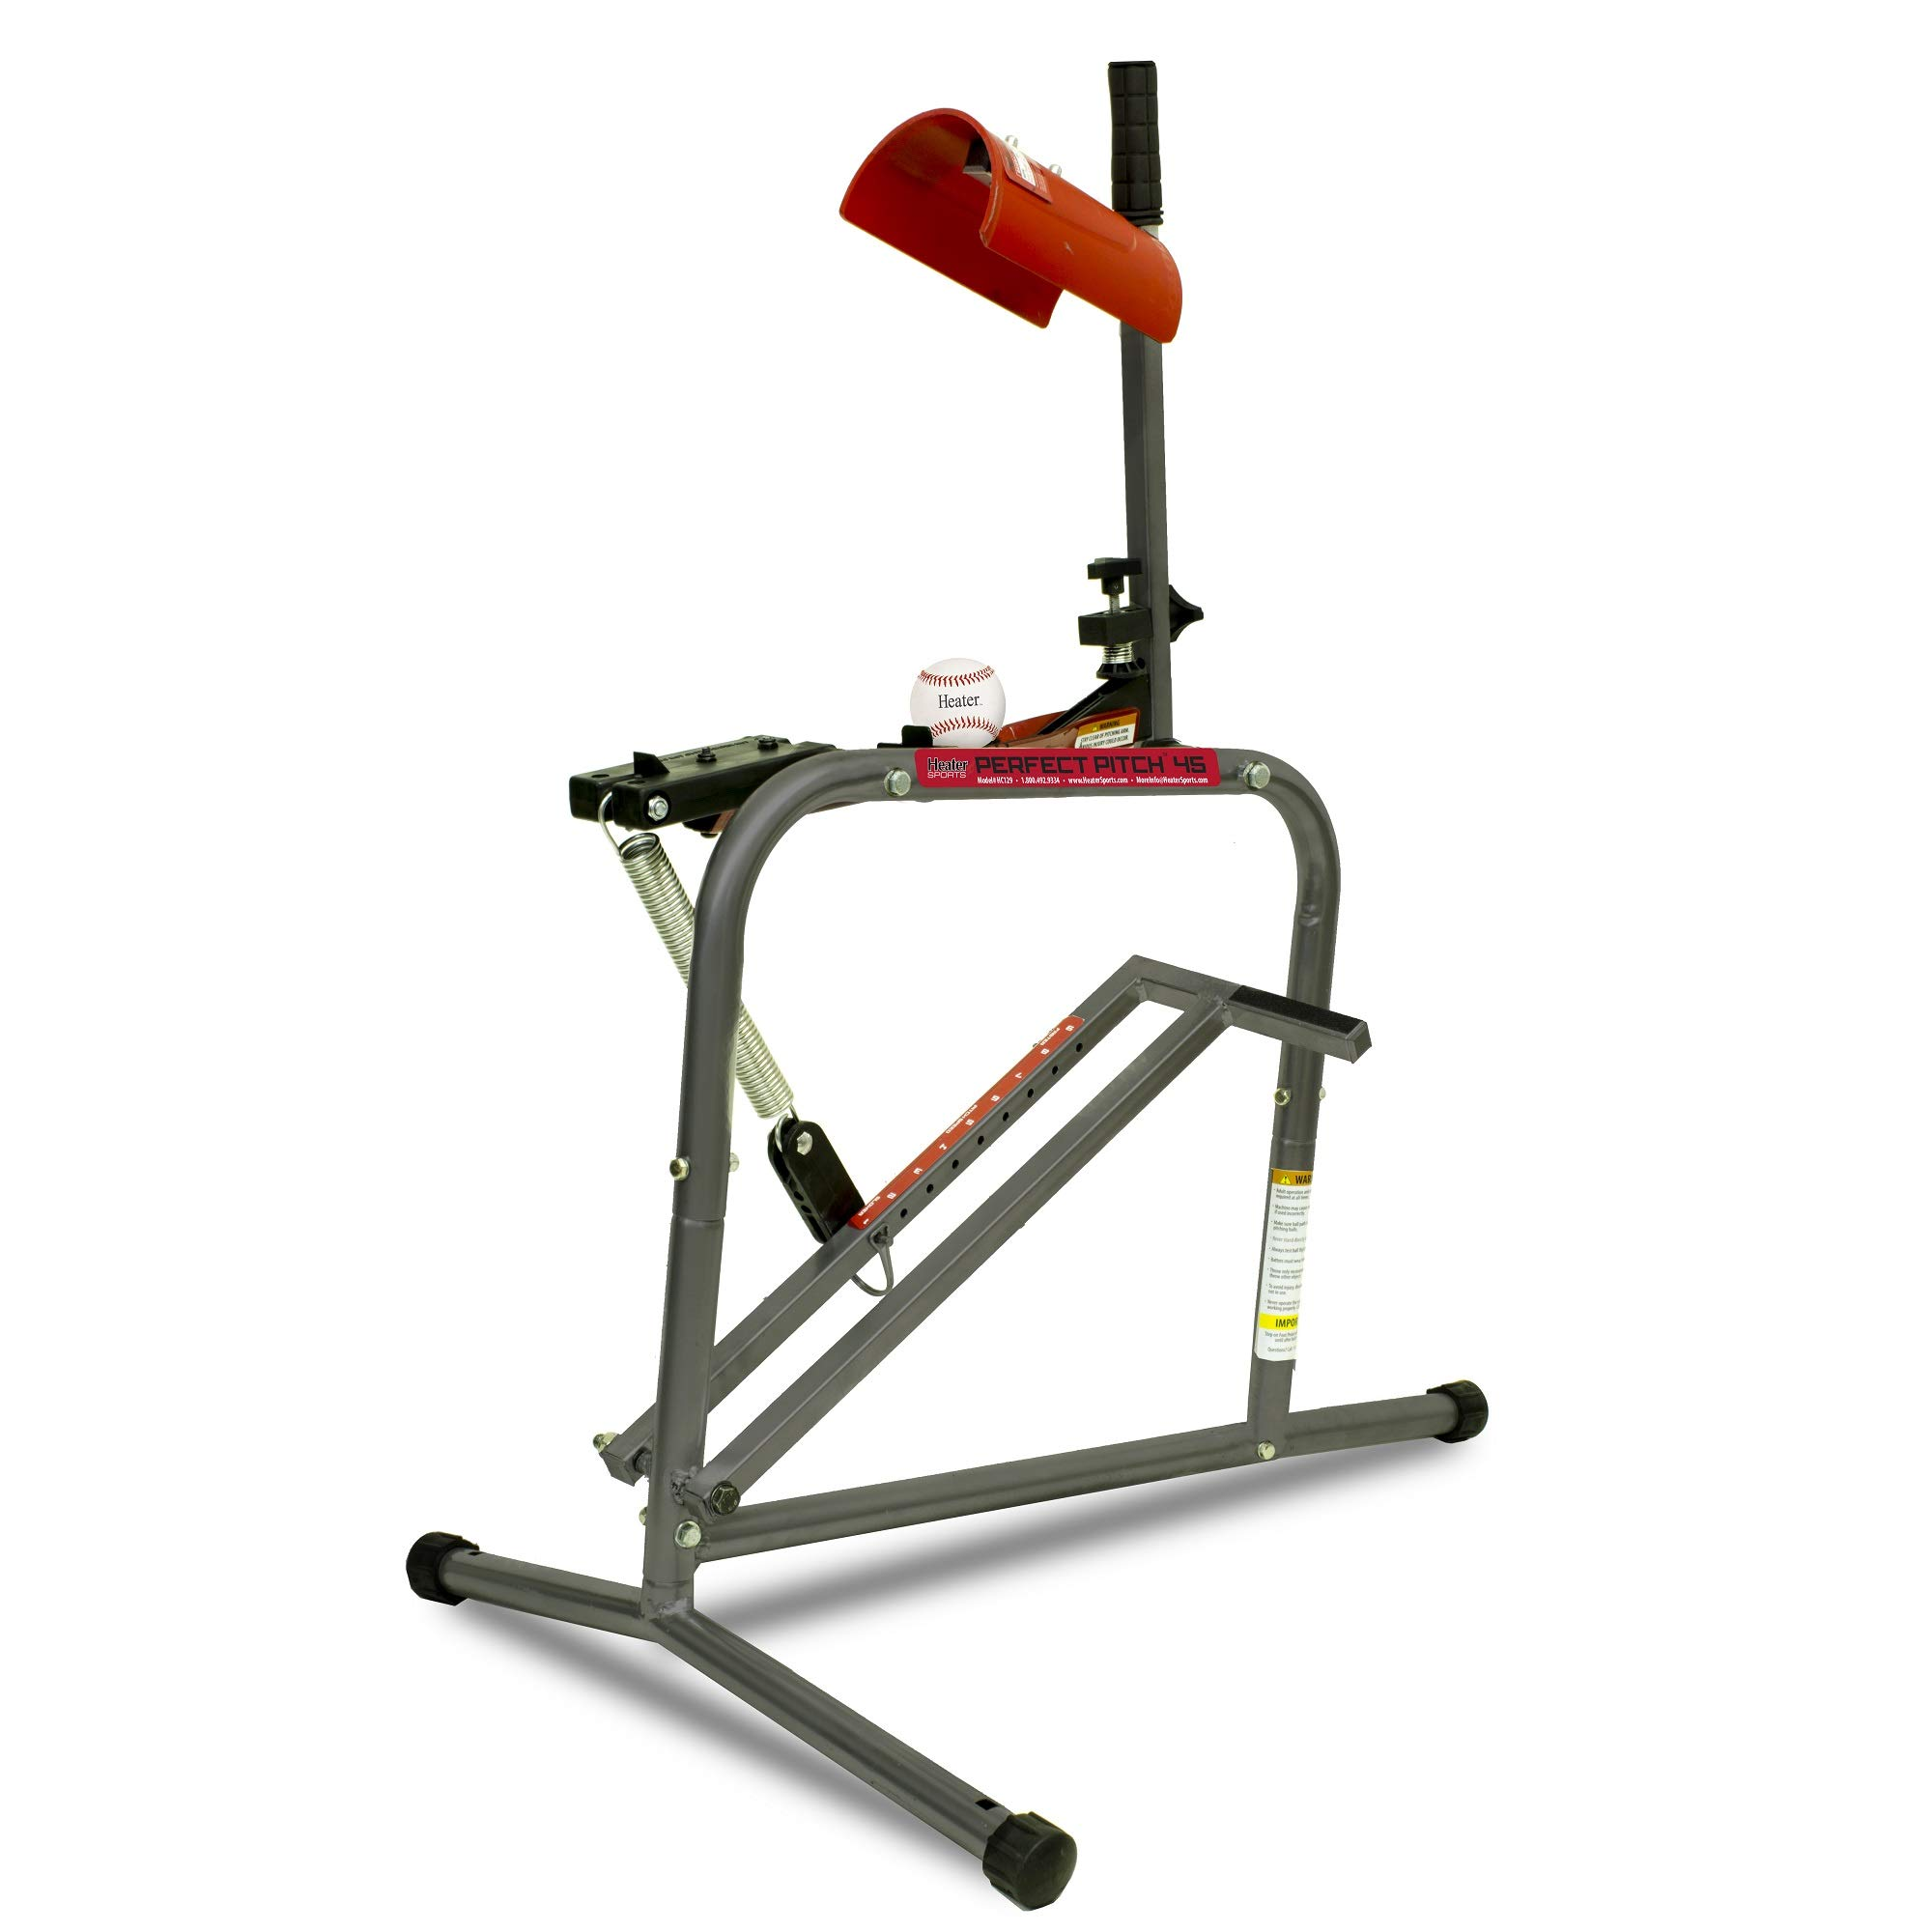 Heater Sports Perfect Pitch 45 MPH Baseball & Softball Pitching Machine for Kids, Teens, Adults, Pitch League, and Coach Pitch - HC129 by Heater Sports